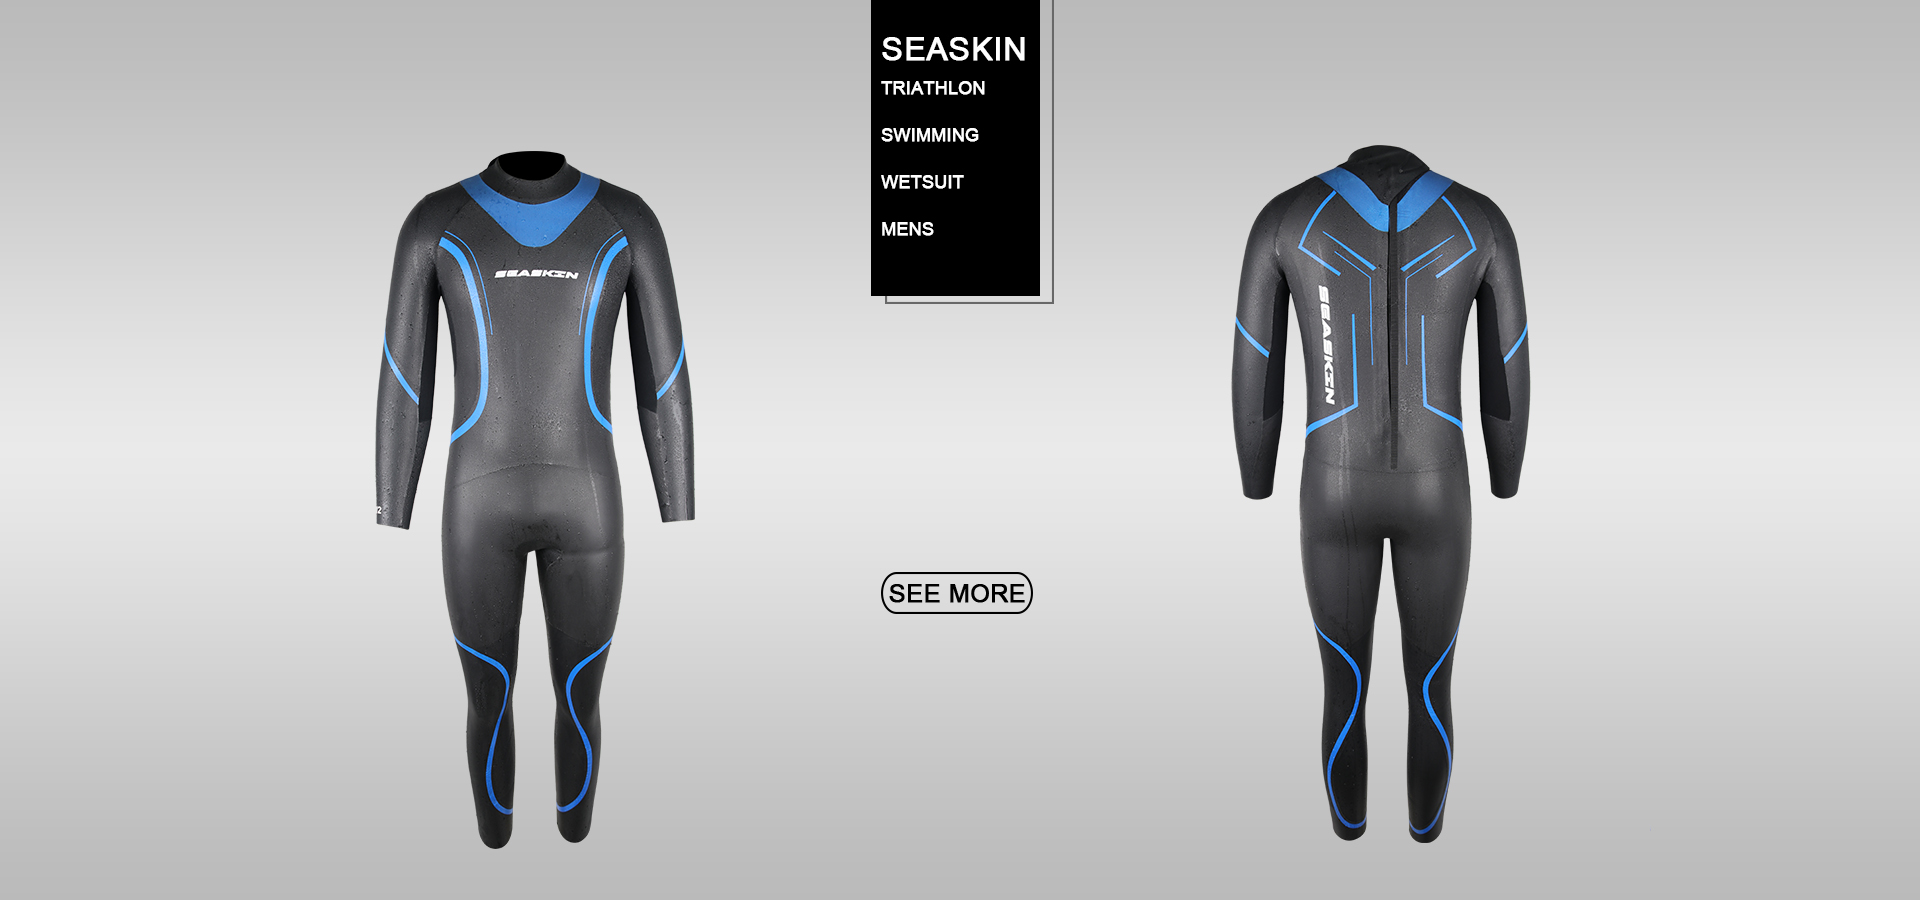 Seaskin mens triathlon wetsuits